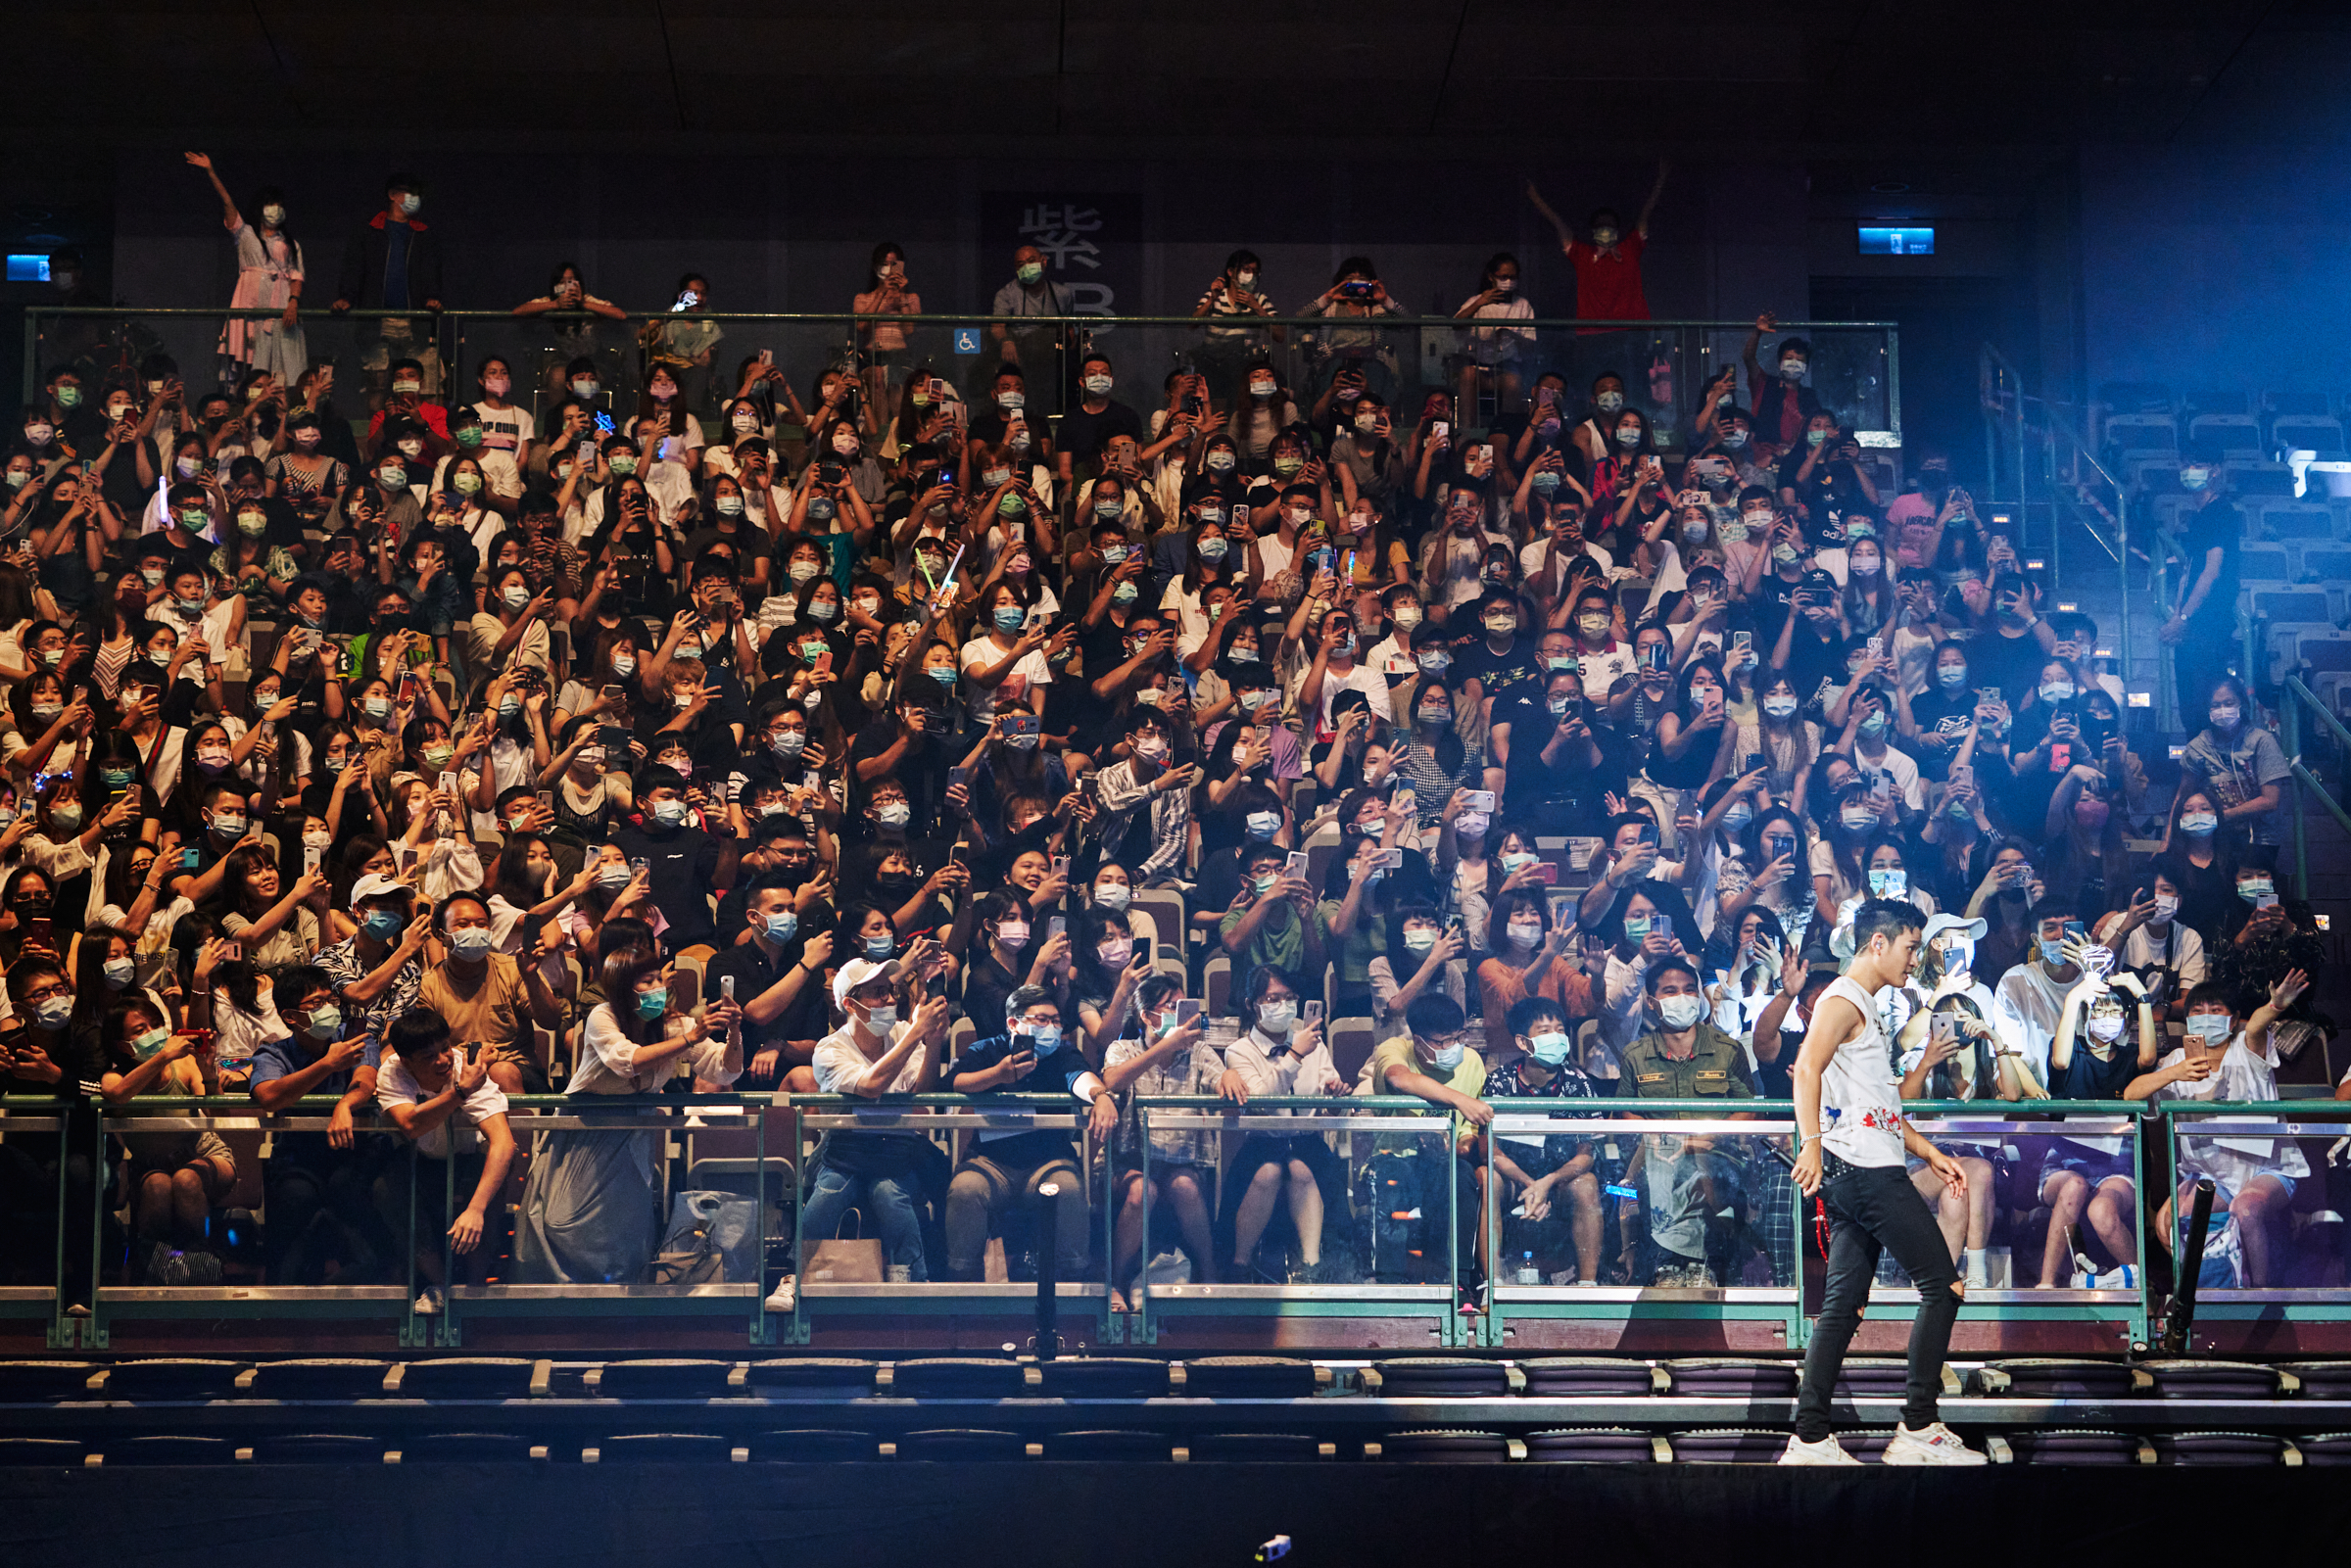 Eric Chou walks on an extended stage that brought him close to fans sitting on the second level of the Taipei Arena on Aug. 8, 2020.